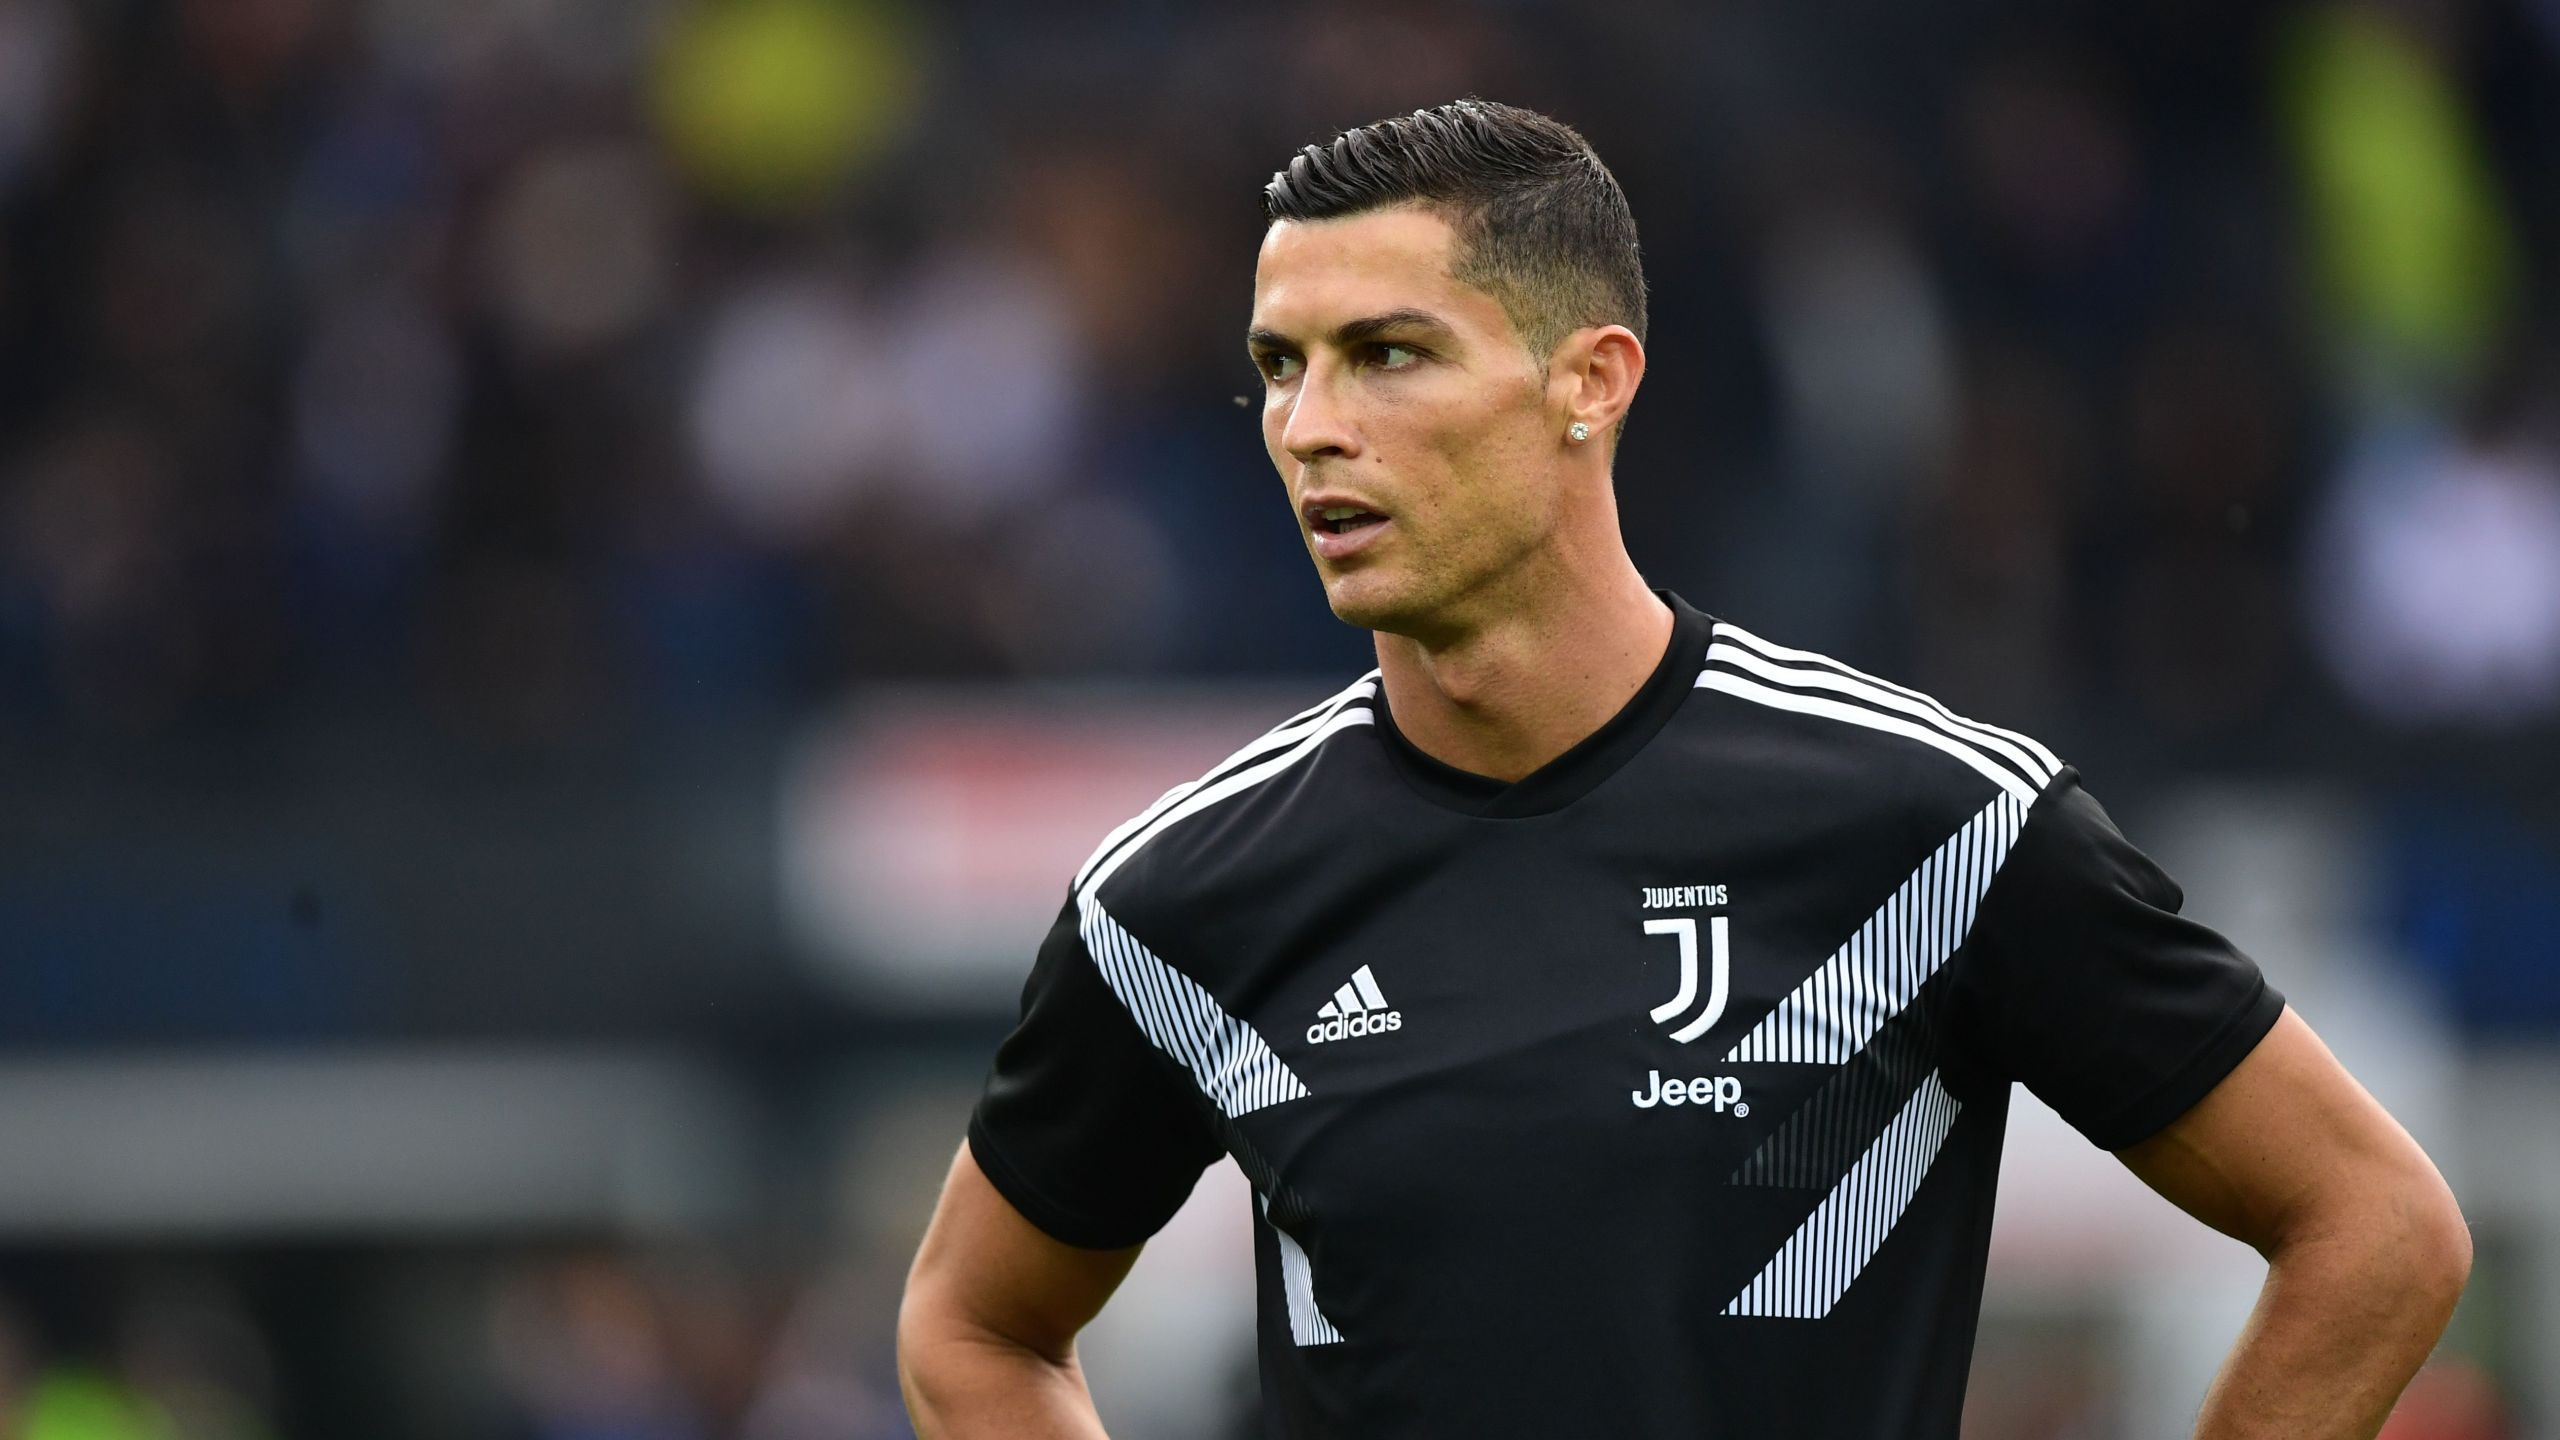 Juventus' Portuguese forward Cristiano Ronaldo trains prior to the Italian Serie A football match Udi-nese Calcio vs Juventus FC at the Dacia Arena stadium in Udine on Oct. 6, 2018. (Credit: Miguel Medina / AFP / Getty Images)